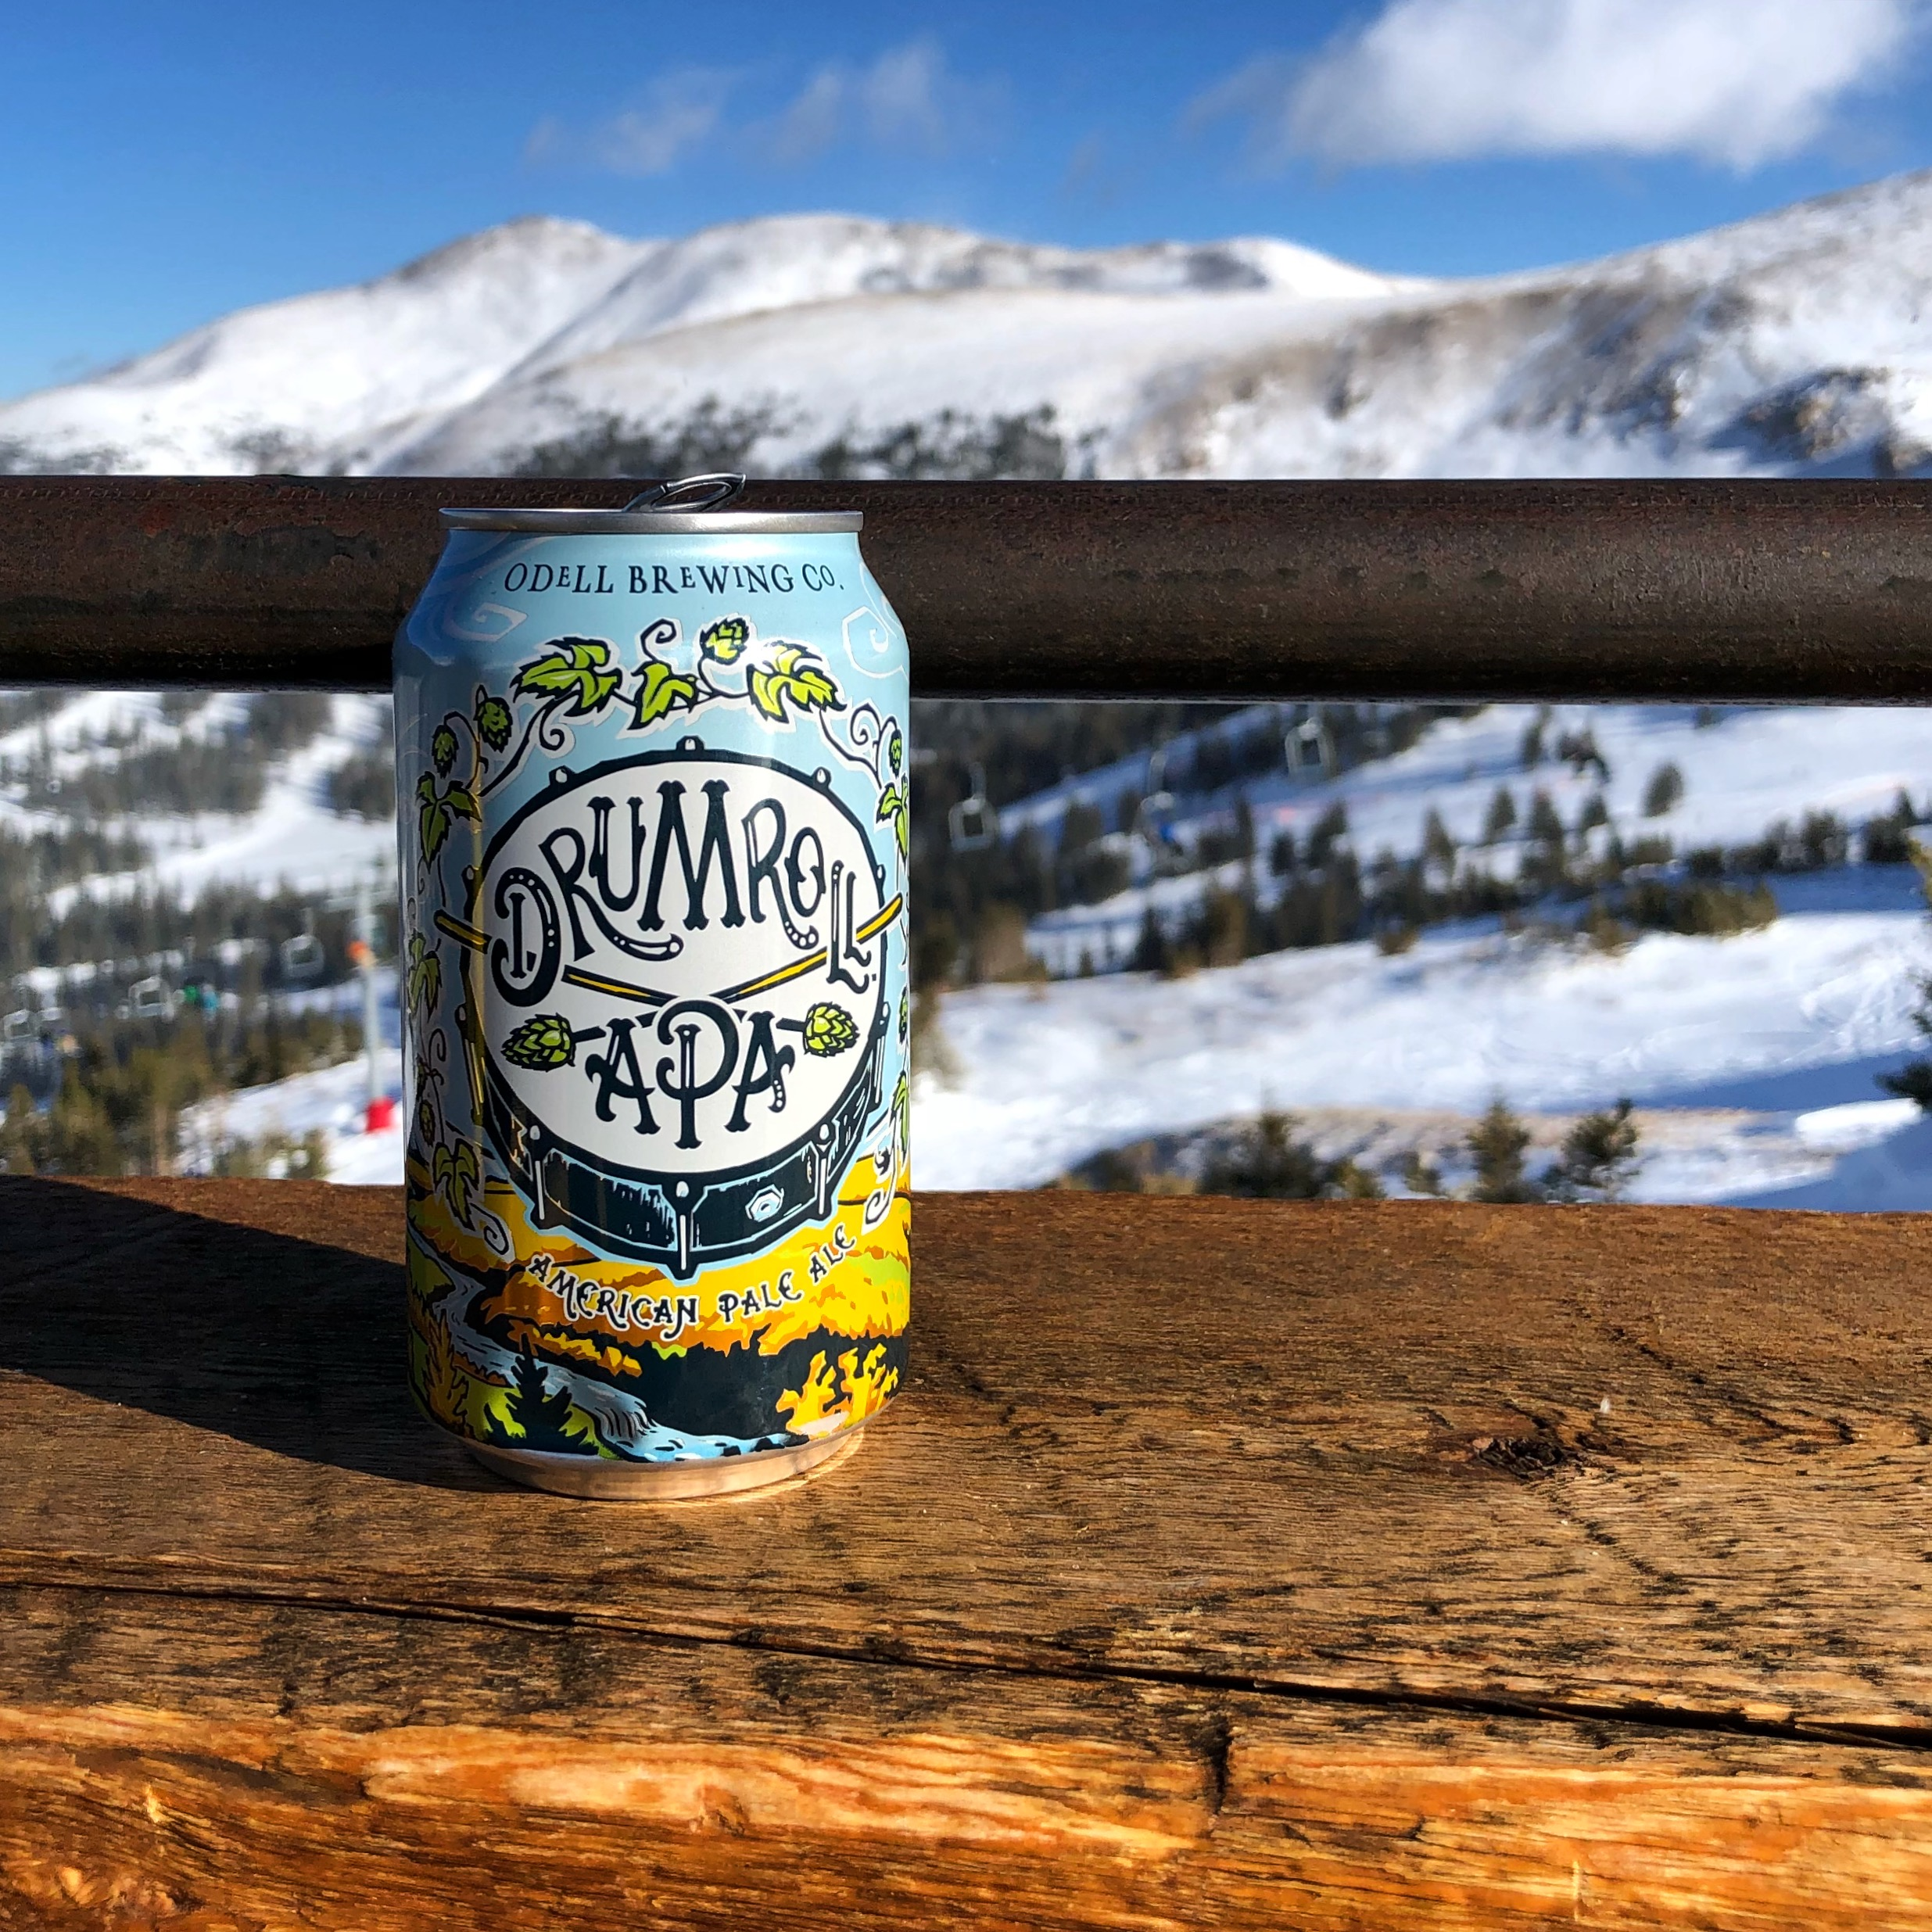 A carb refuling break with Odell Brewing Drumroll APA while hitting the slopes during the Big Beers, Belgians & Barleywines Festival.